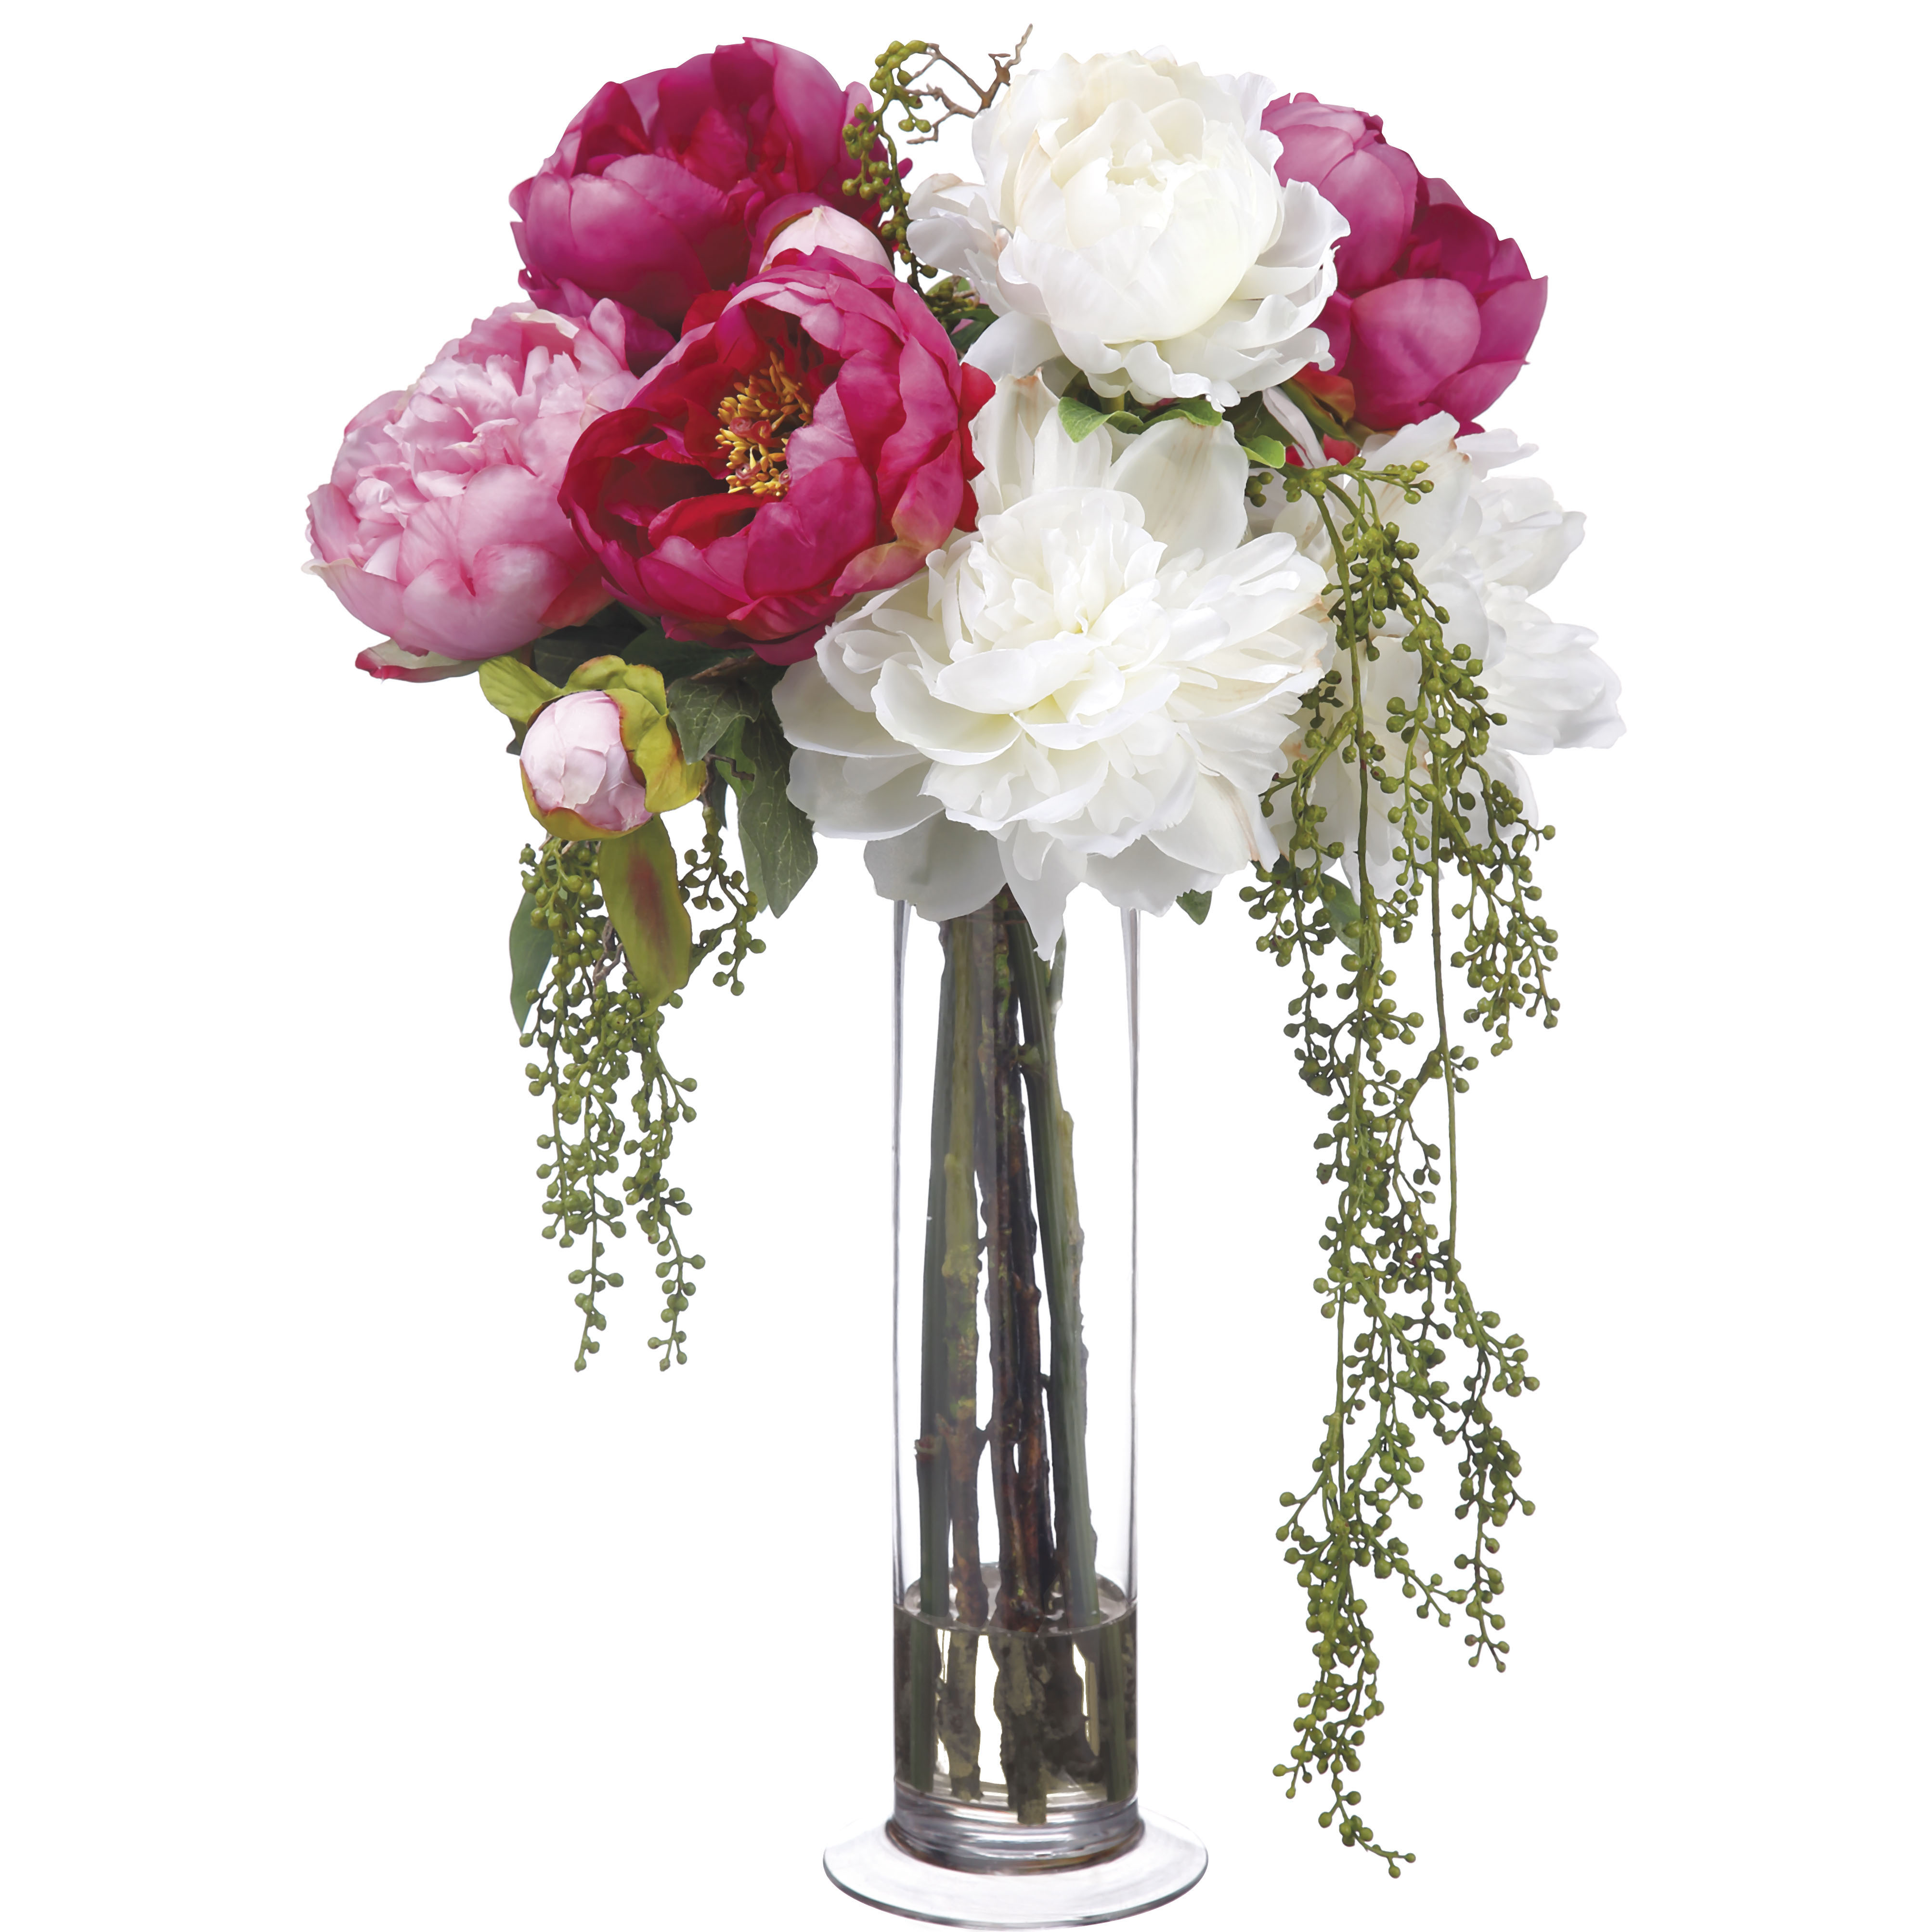 21 Inch Artificial Peony And Berry Arrangement In Cylinder Glass Vase